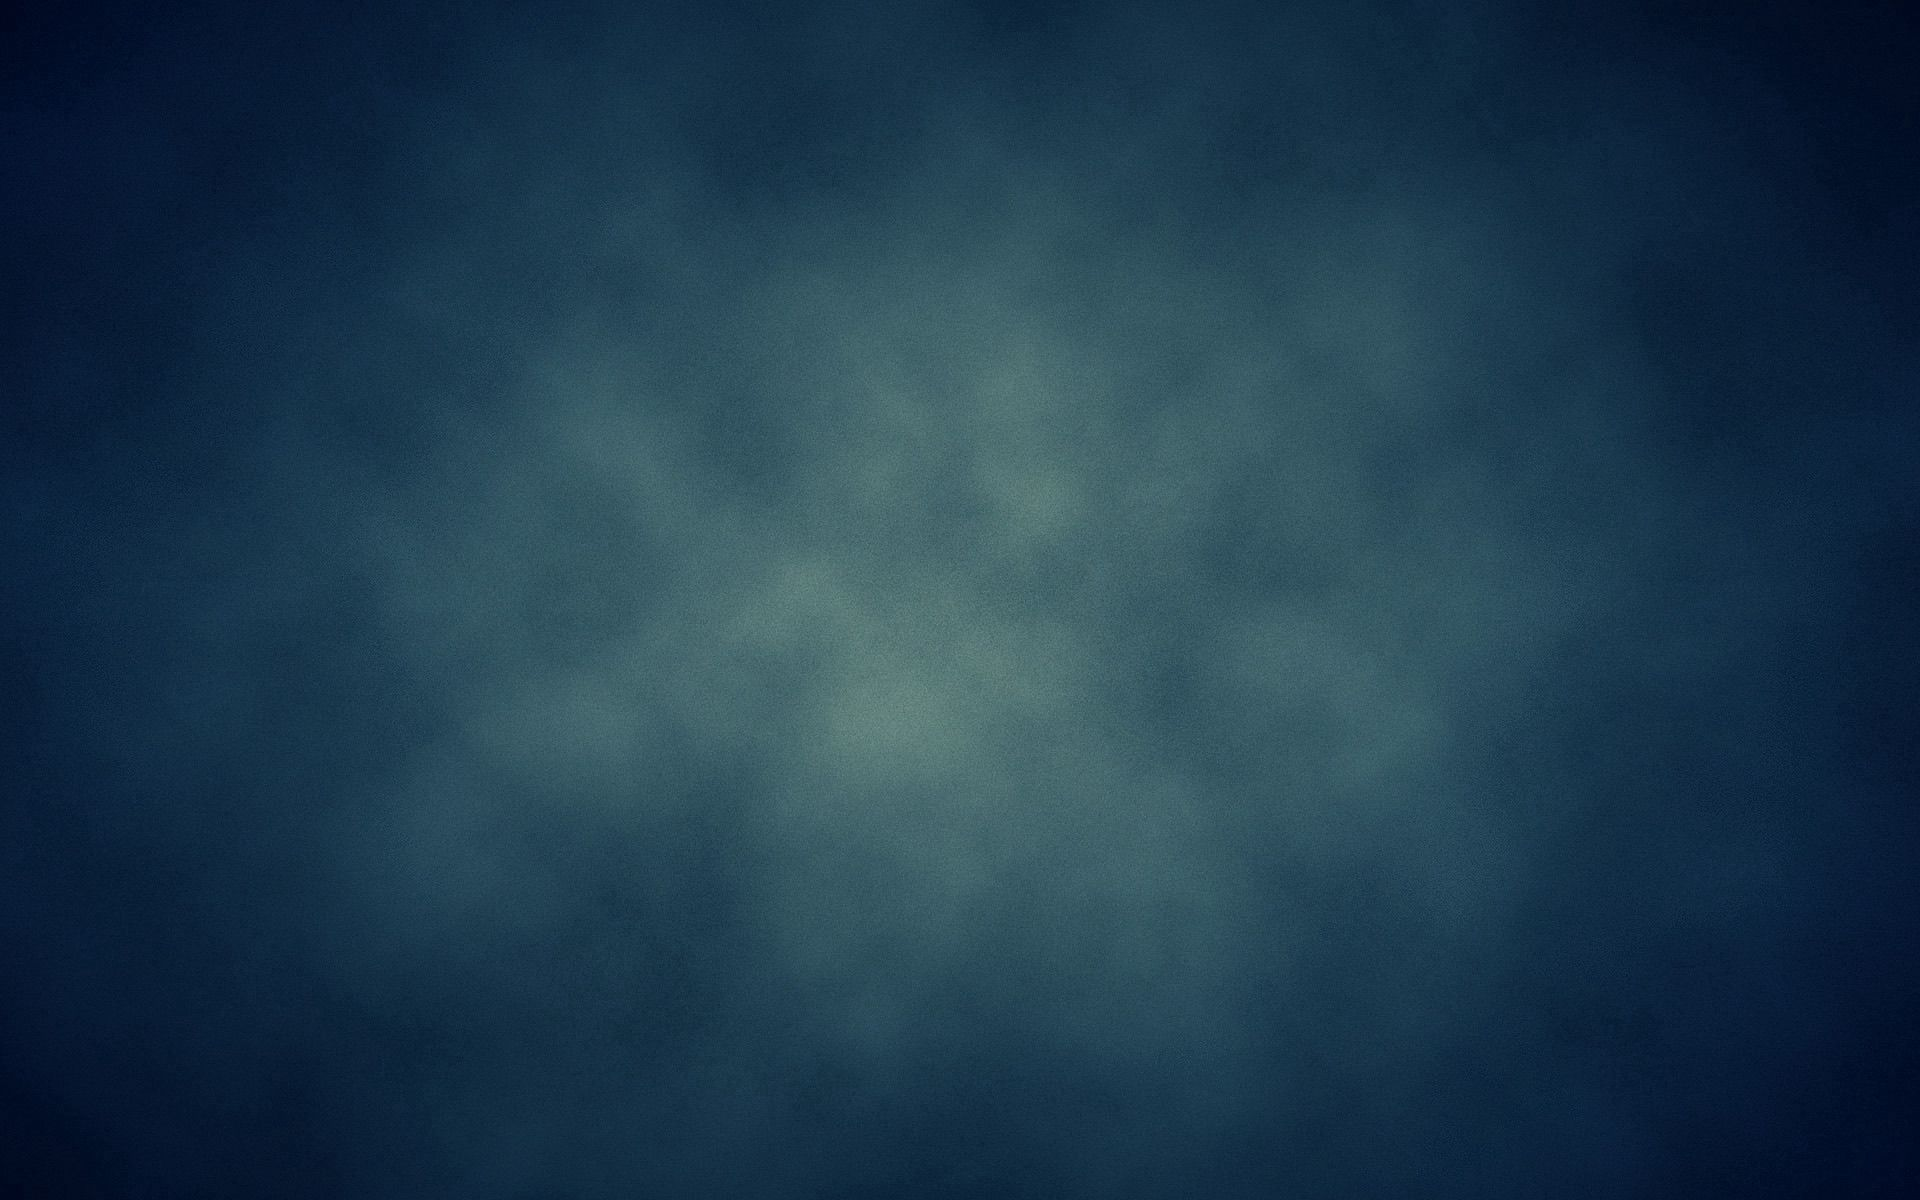 115293 download wallpaper Textures, Dark, Texture, Surface, Stains, Spots screensavers and pictures for free